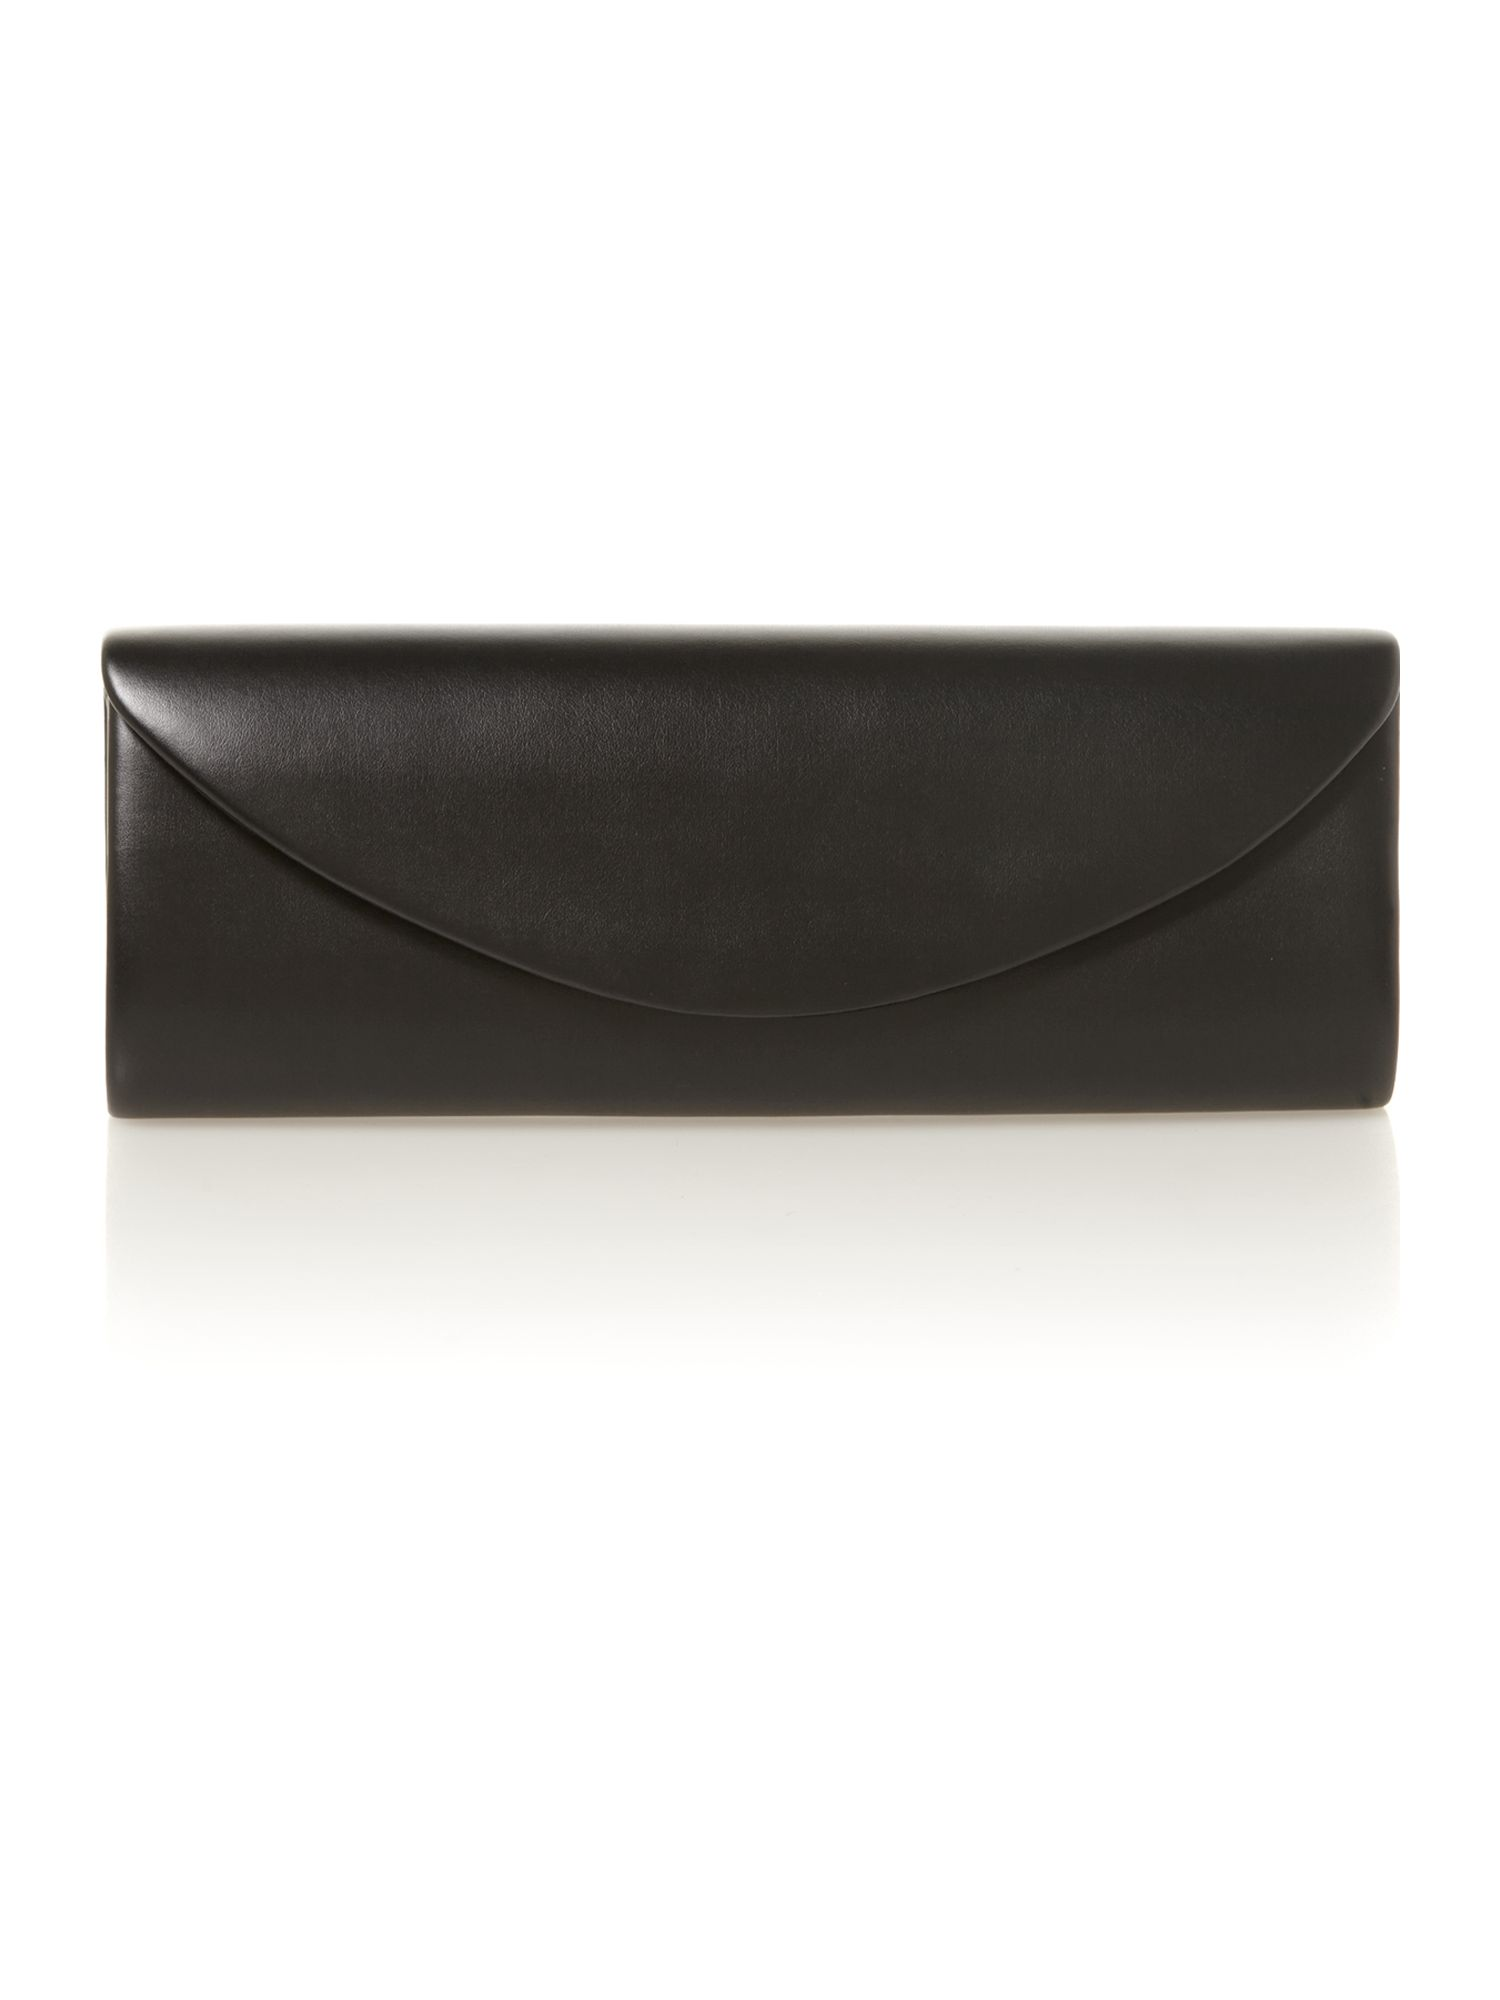 Black classic foldover clutch bag